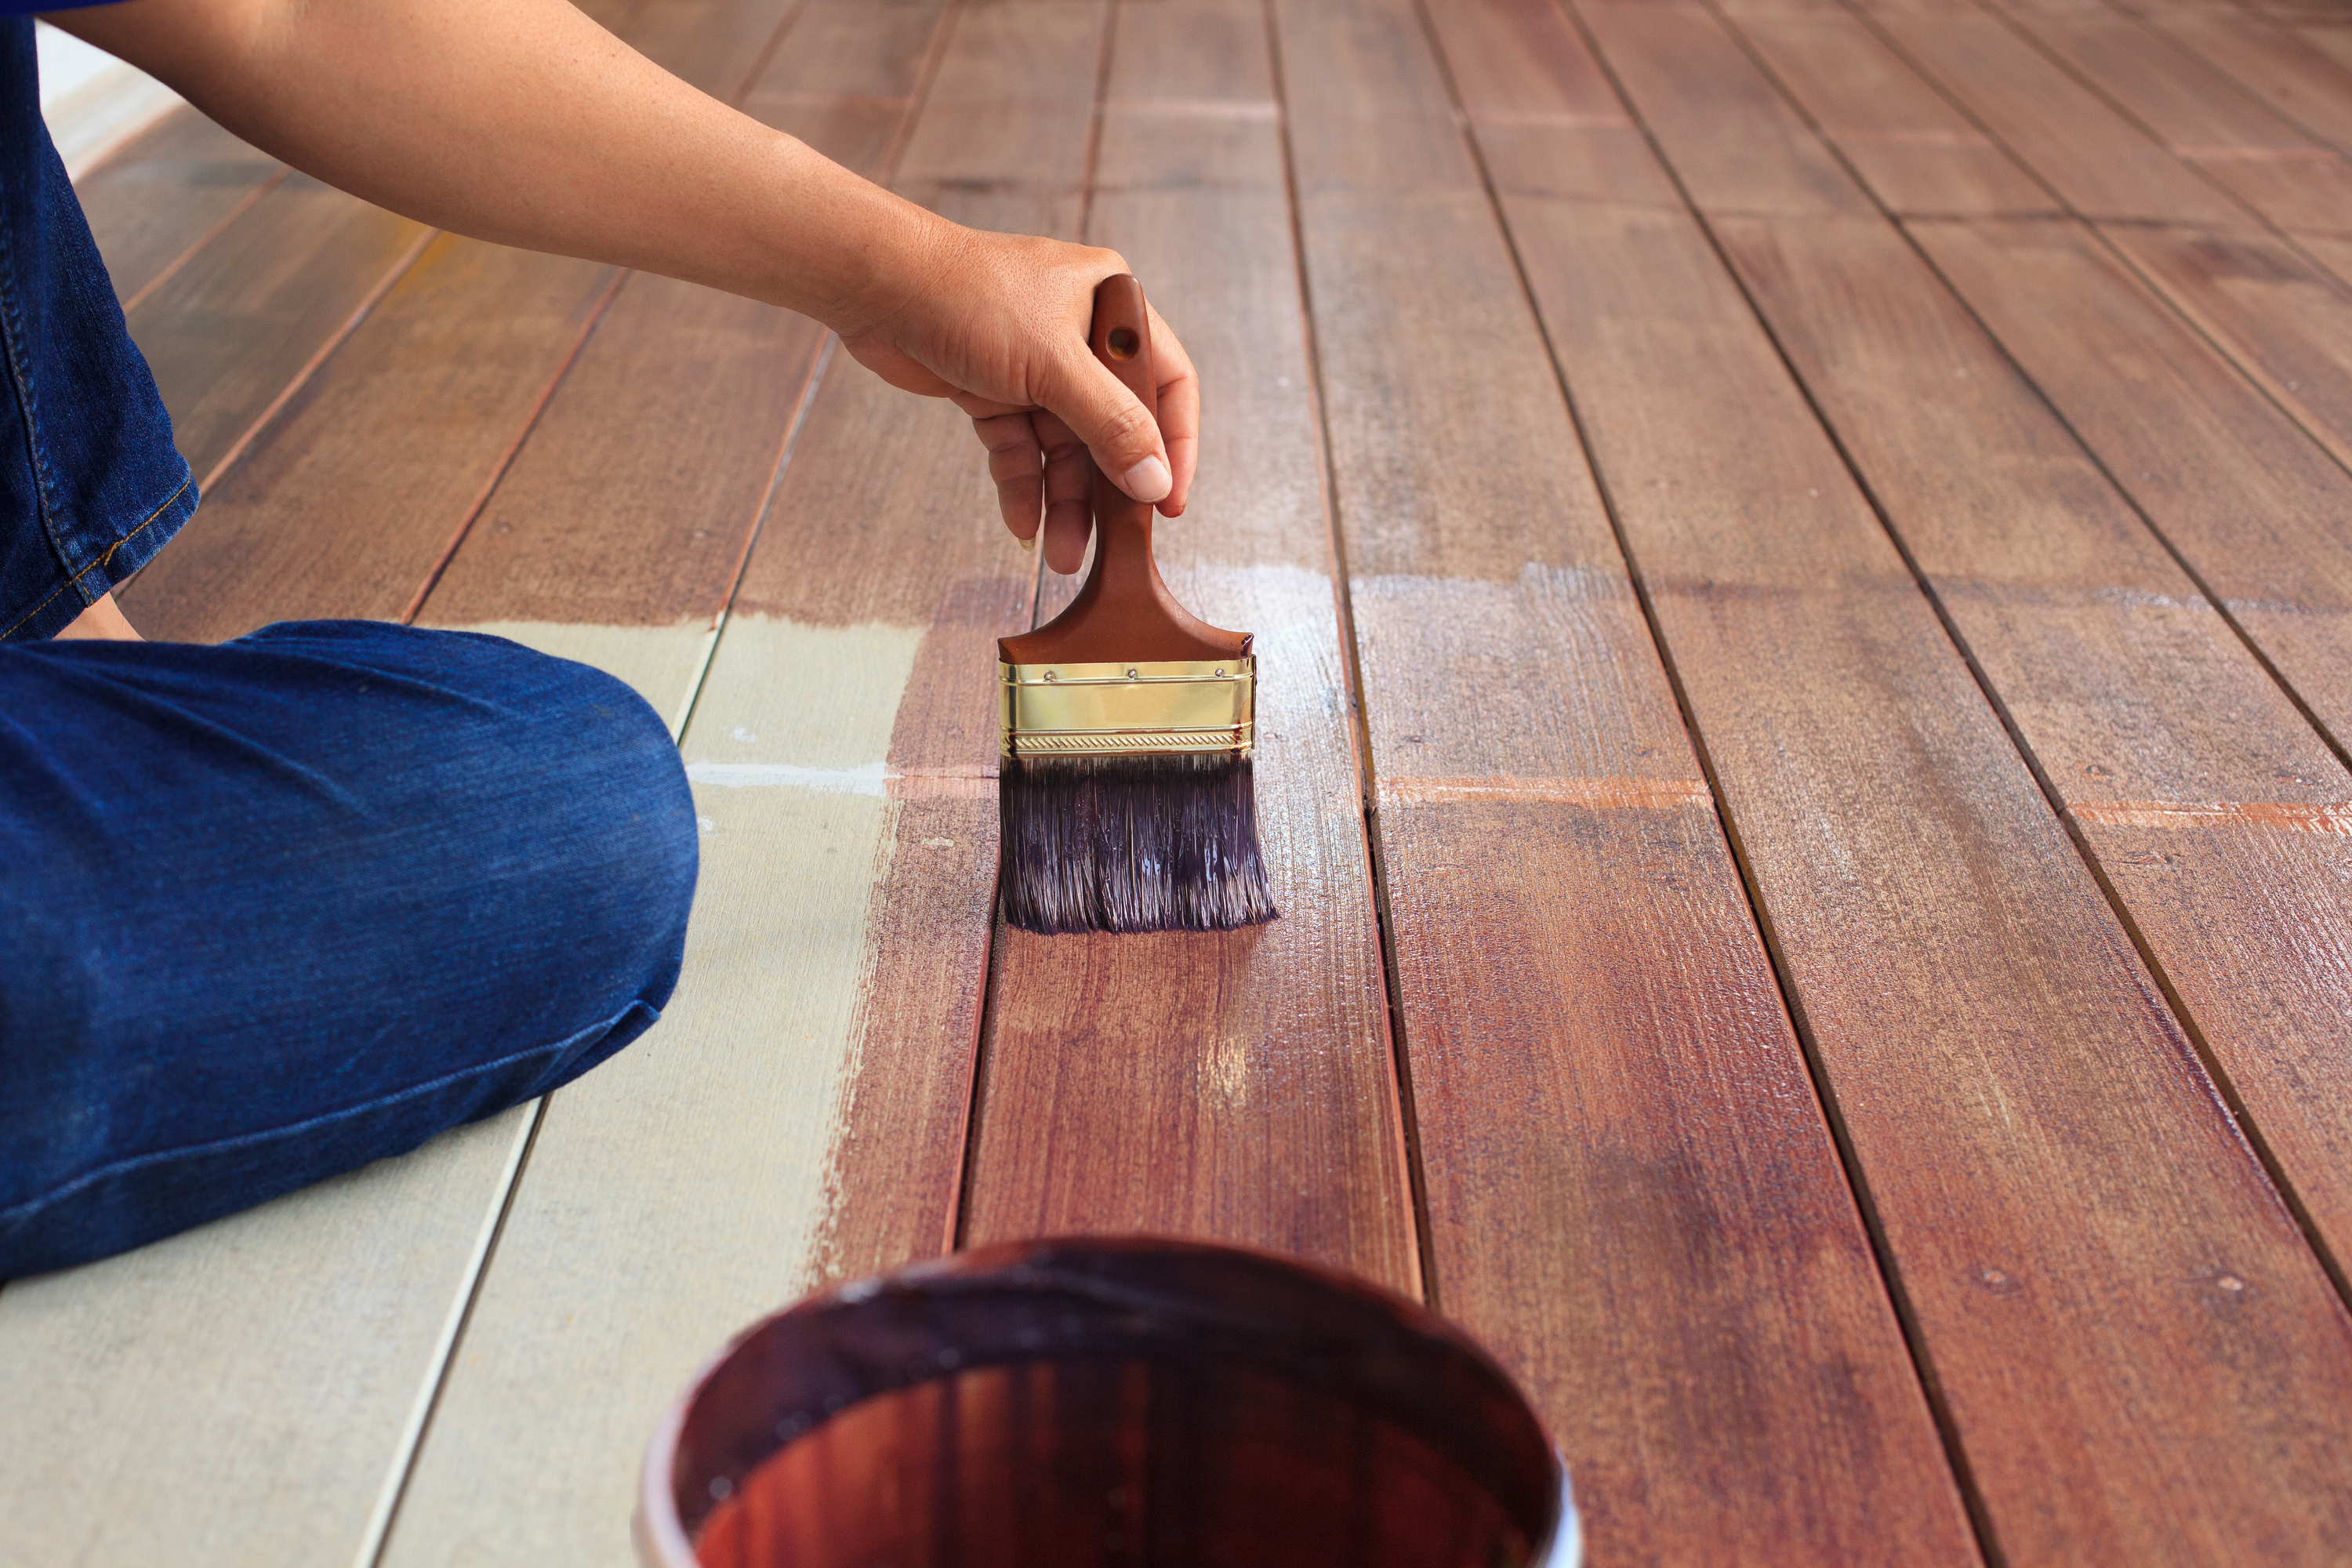 deck | stain | paint | deck stain | deck paint | tips and tricks for refinishing a deck | refinish an old deck | how to refinish an old deck